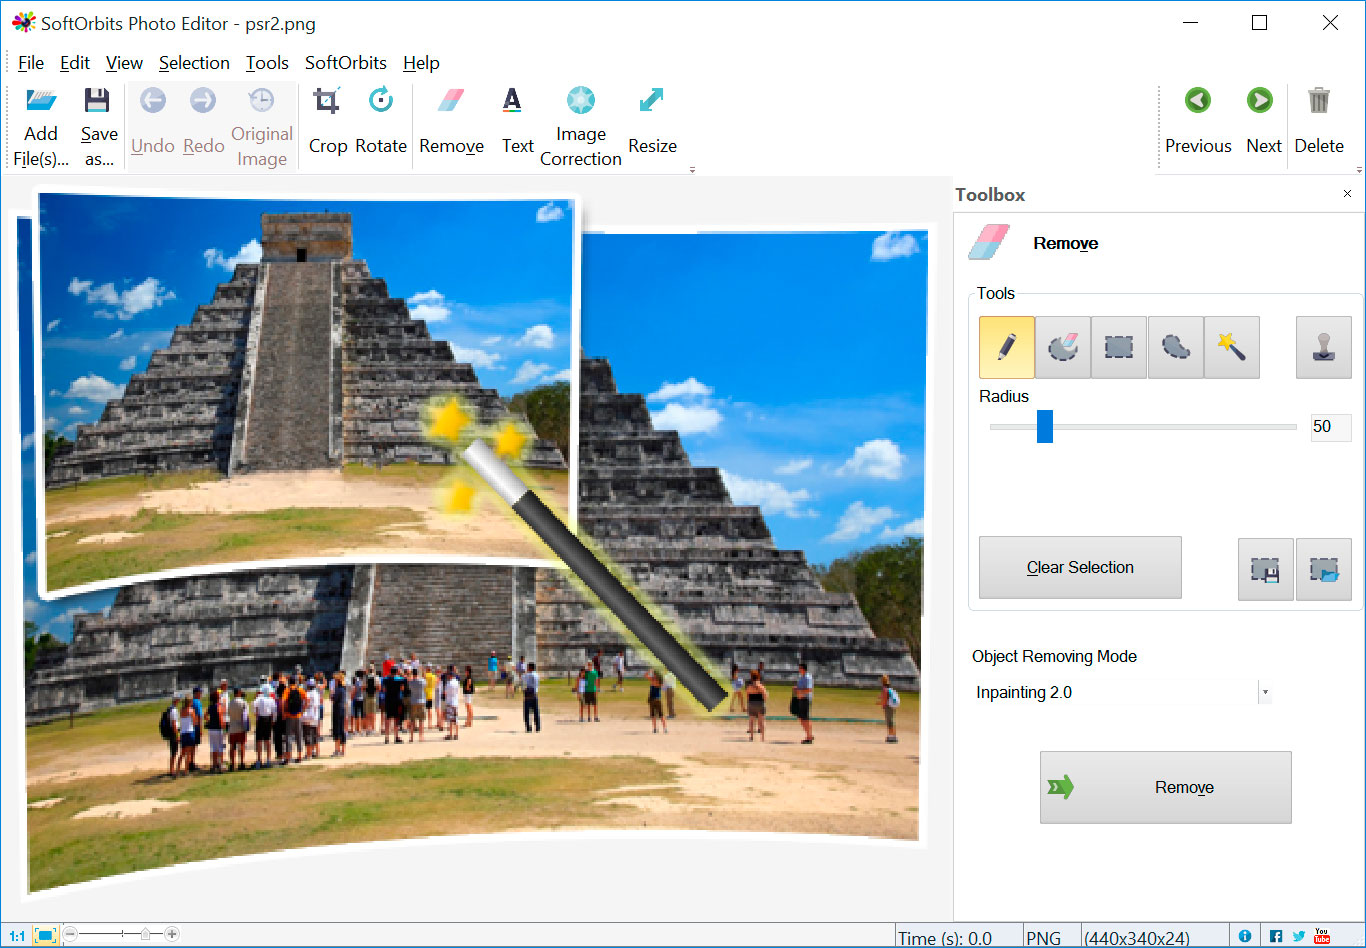 SoftOrbits Photo Editor 2